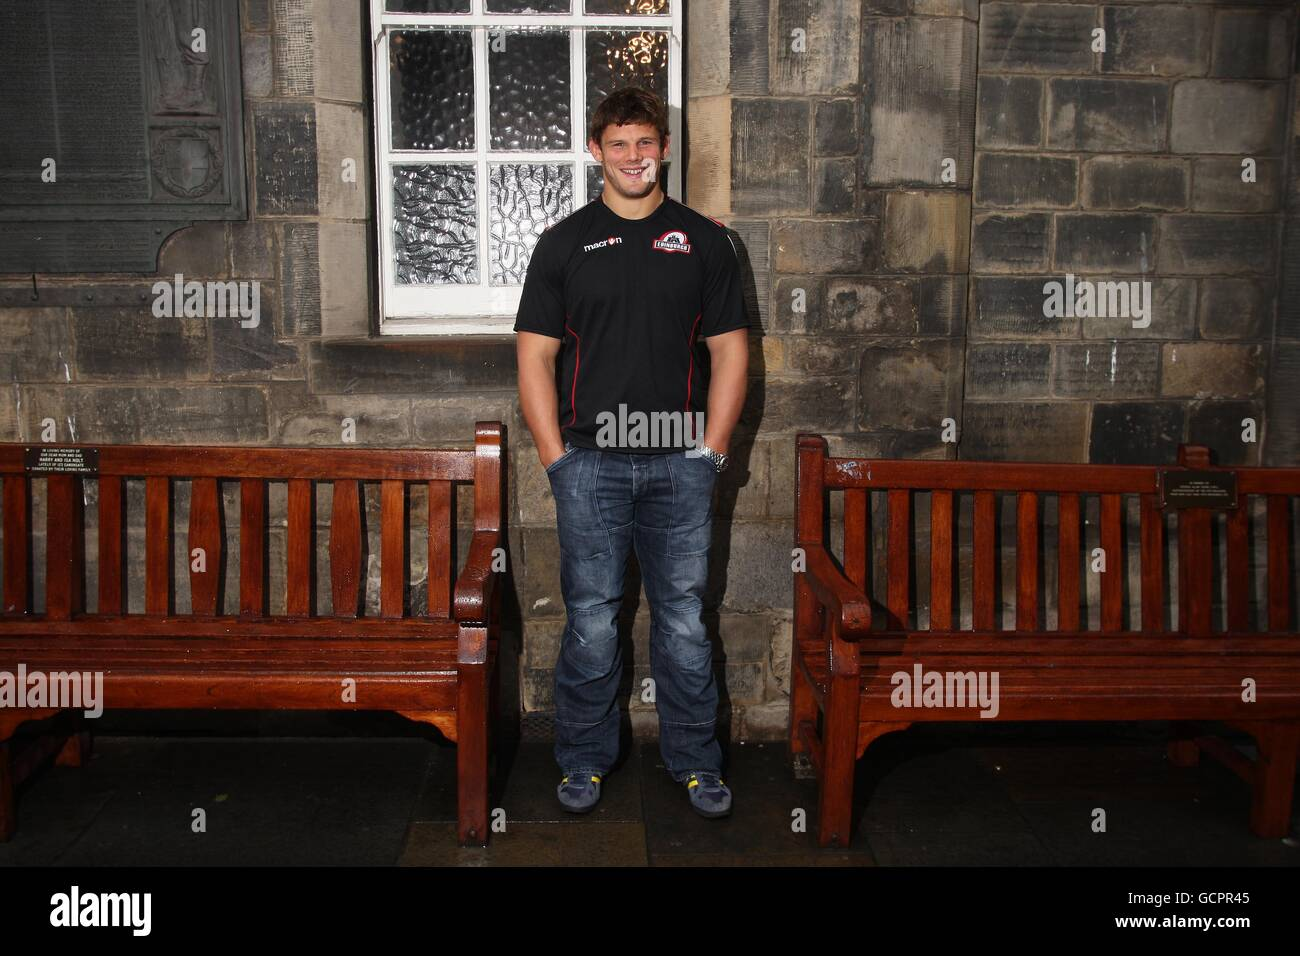 Rugby Union - Edinburgh Photocall - The People's Story Stock Photo